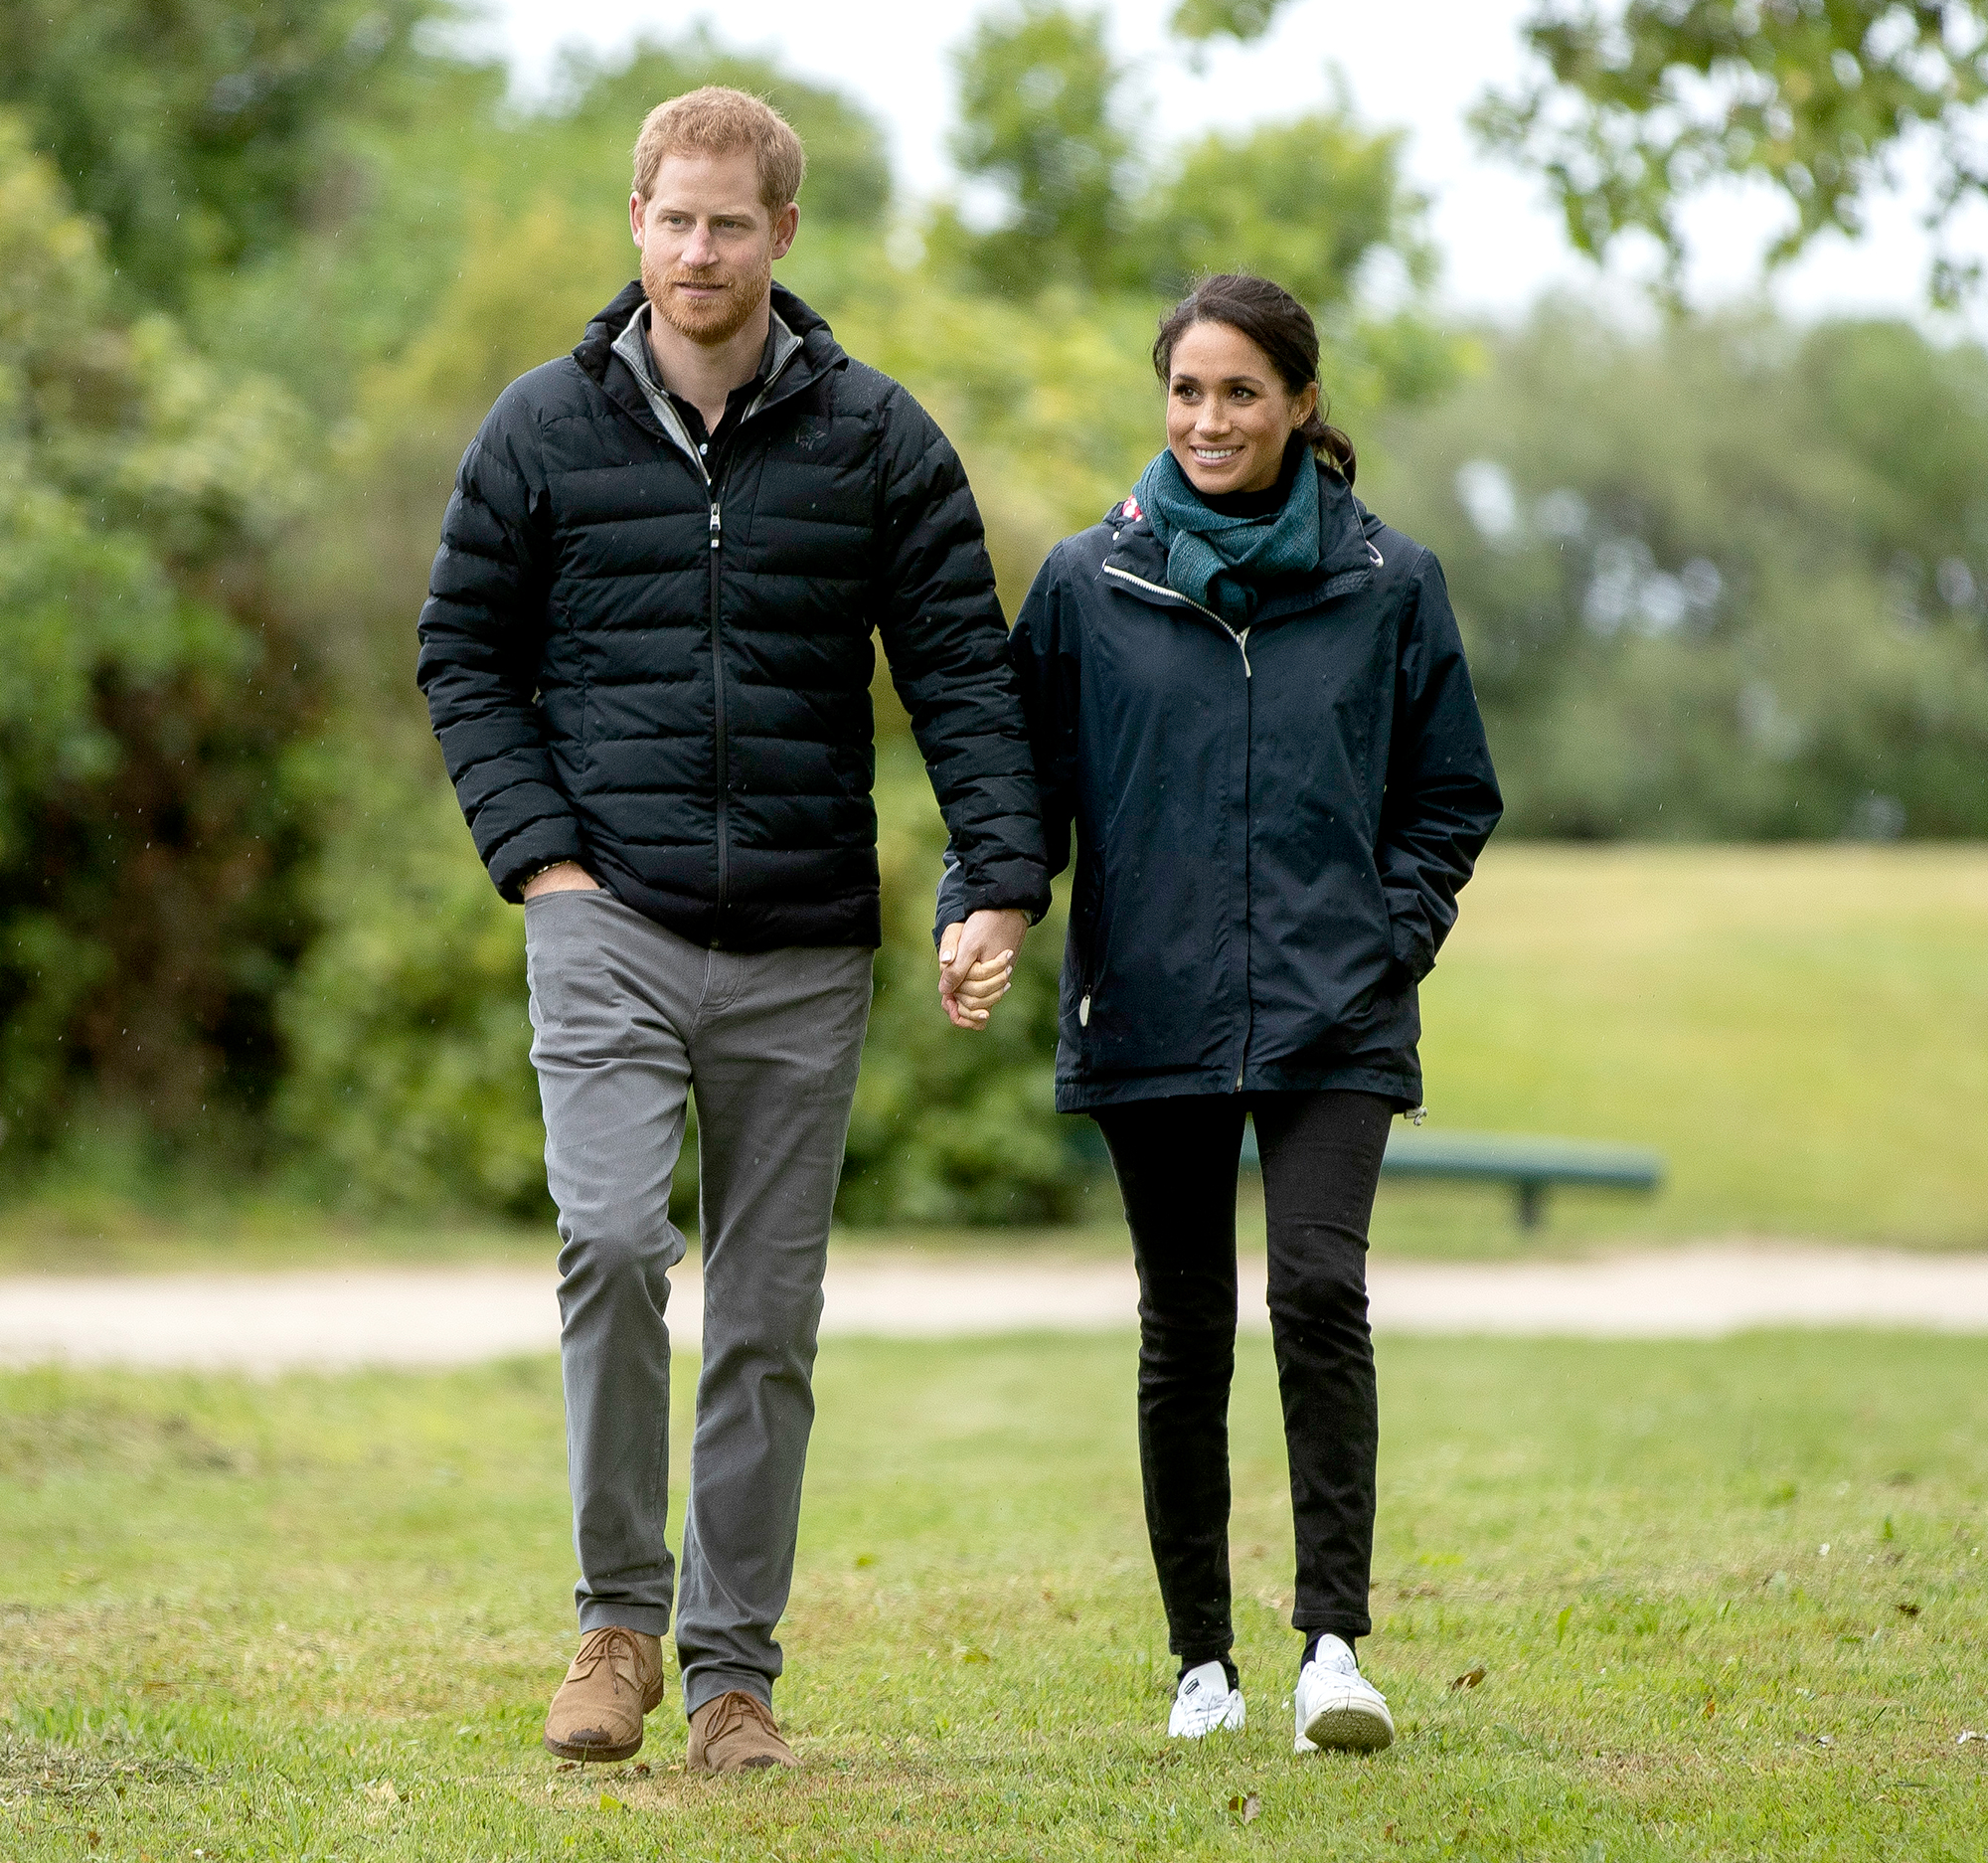 Prince-Harry-and-Duchess-Meghan-Are-'Very-Happy'-With-Frogmore-Cottage